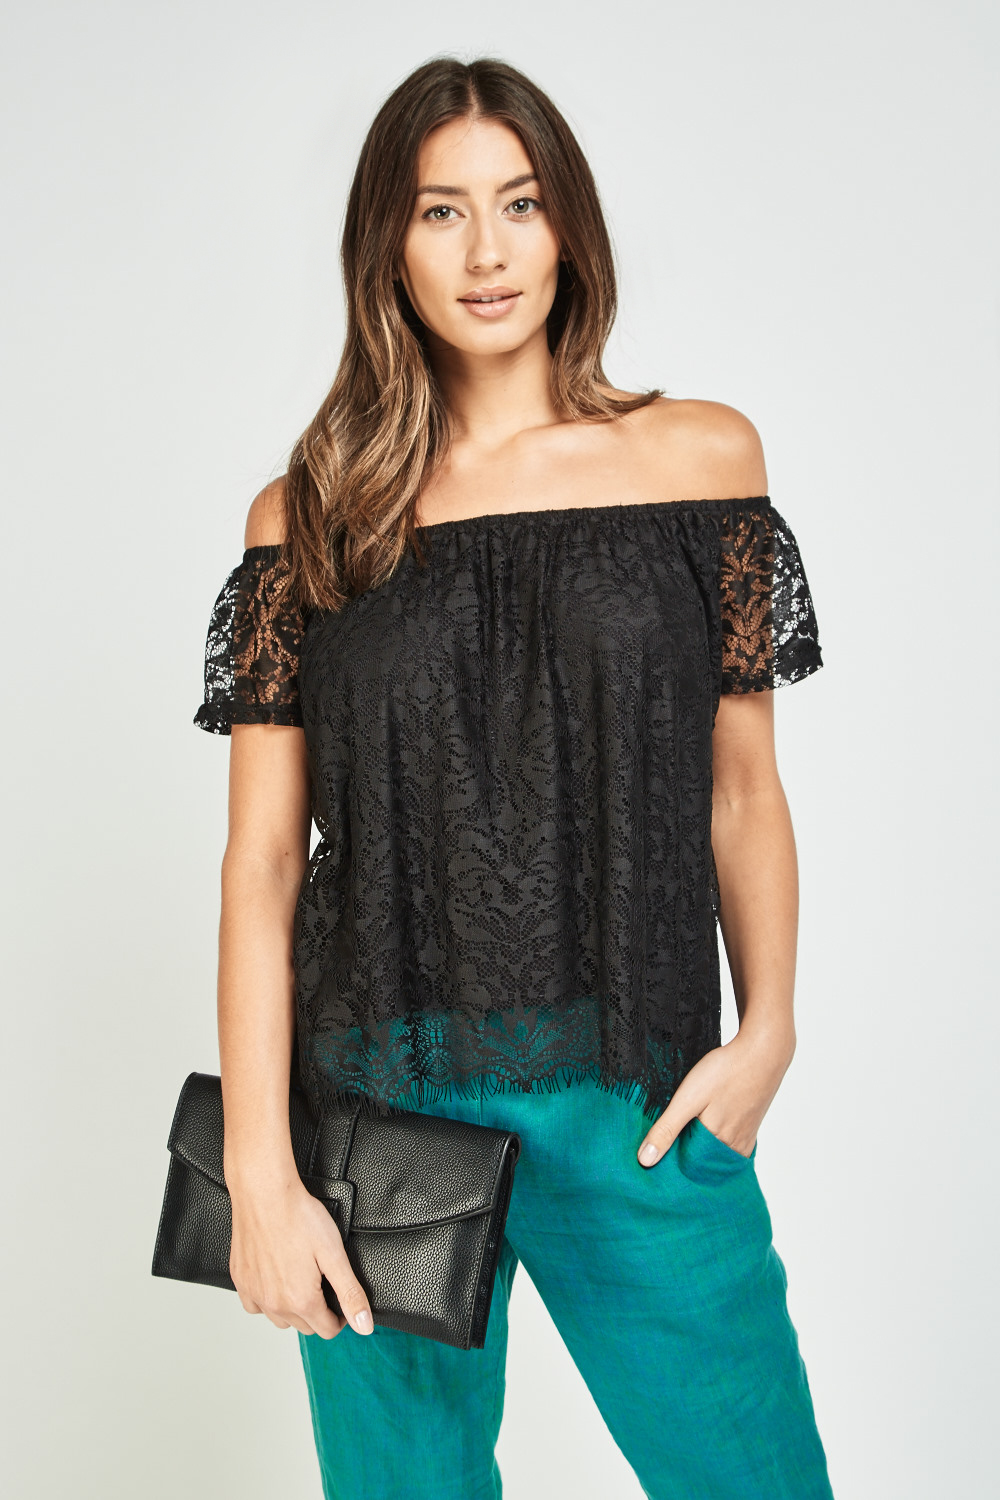 ae3c766150fe0 Off Shoulder Lace Overlay Bardot Top - Black - Just £5